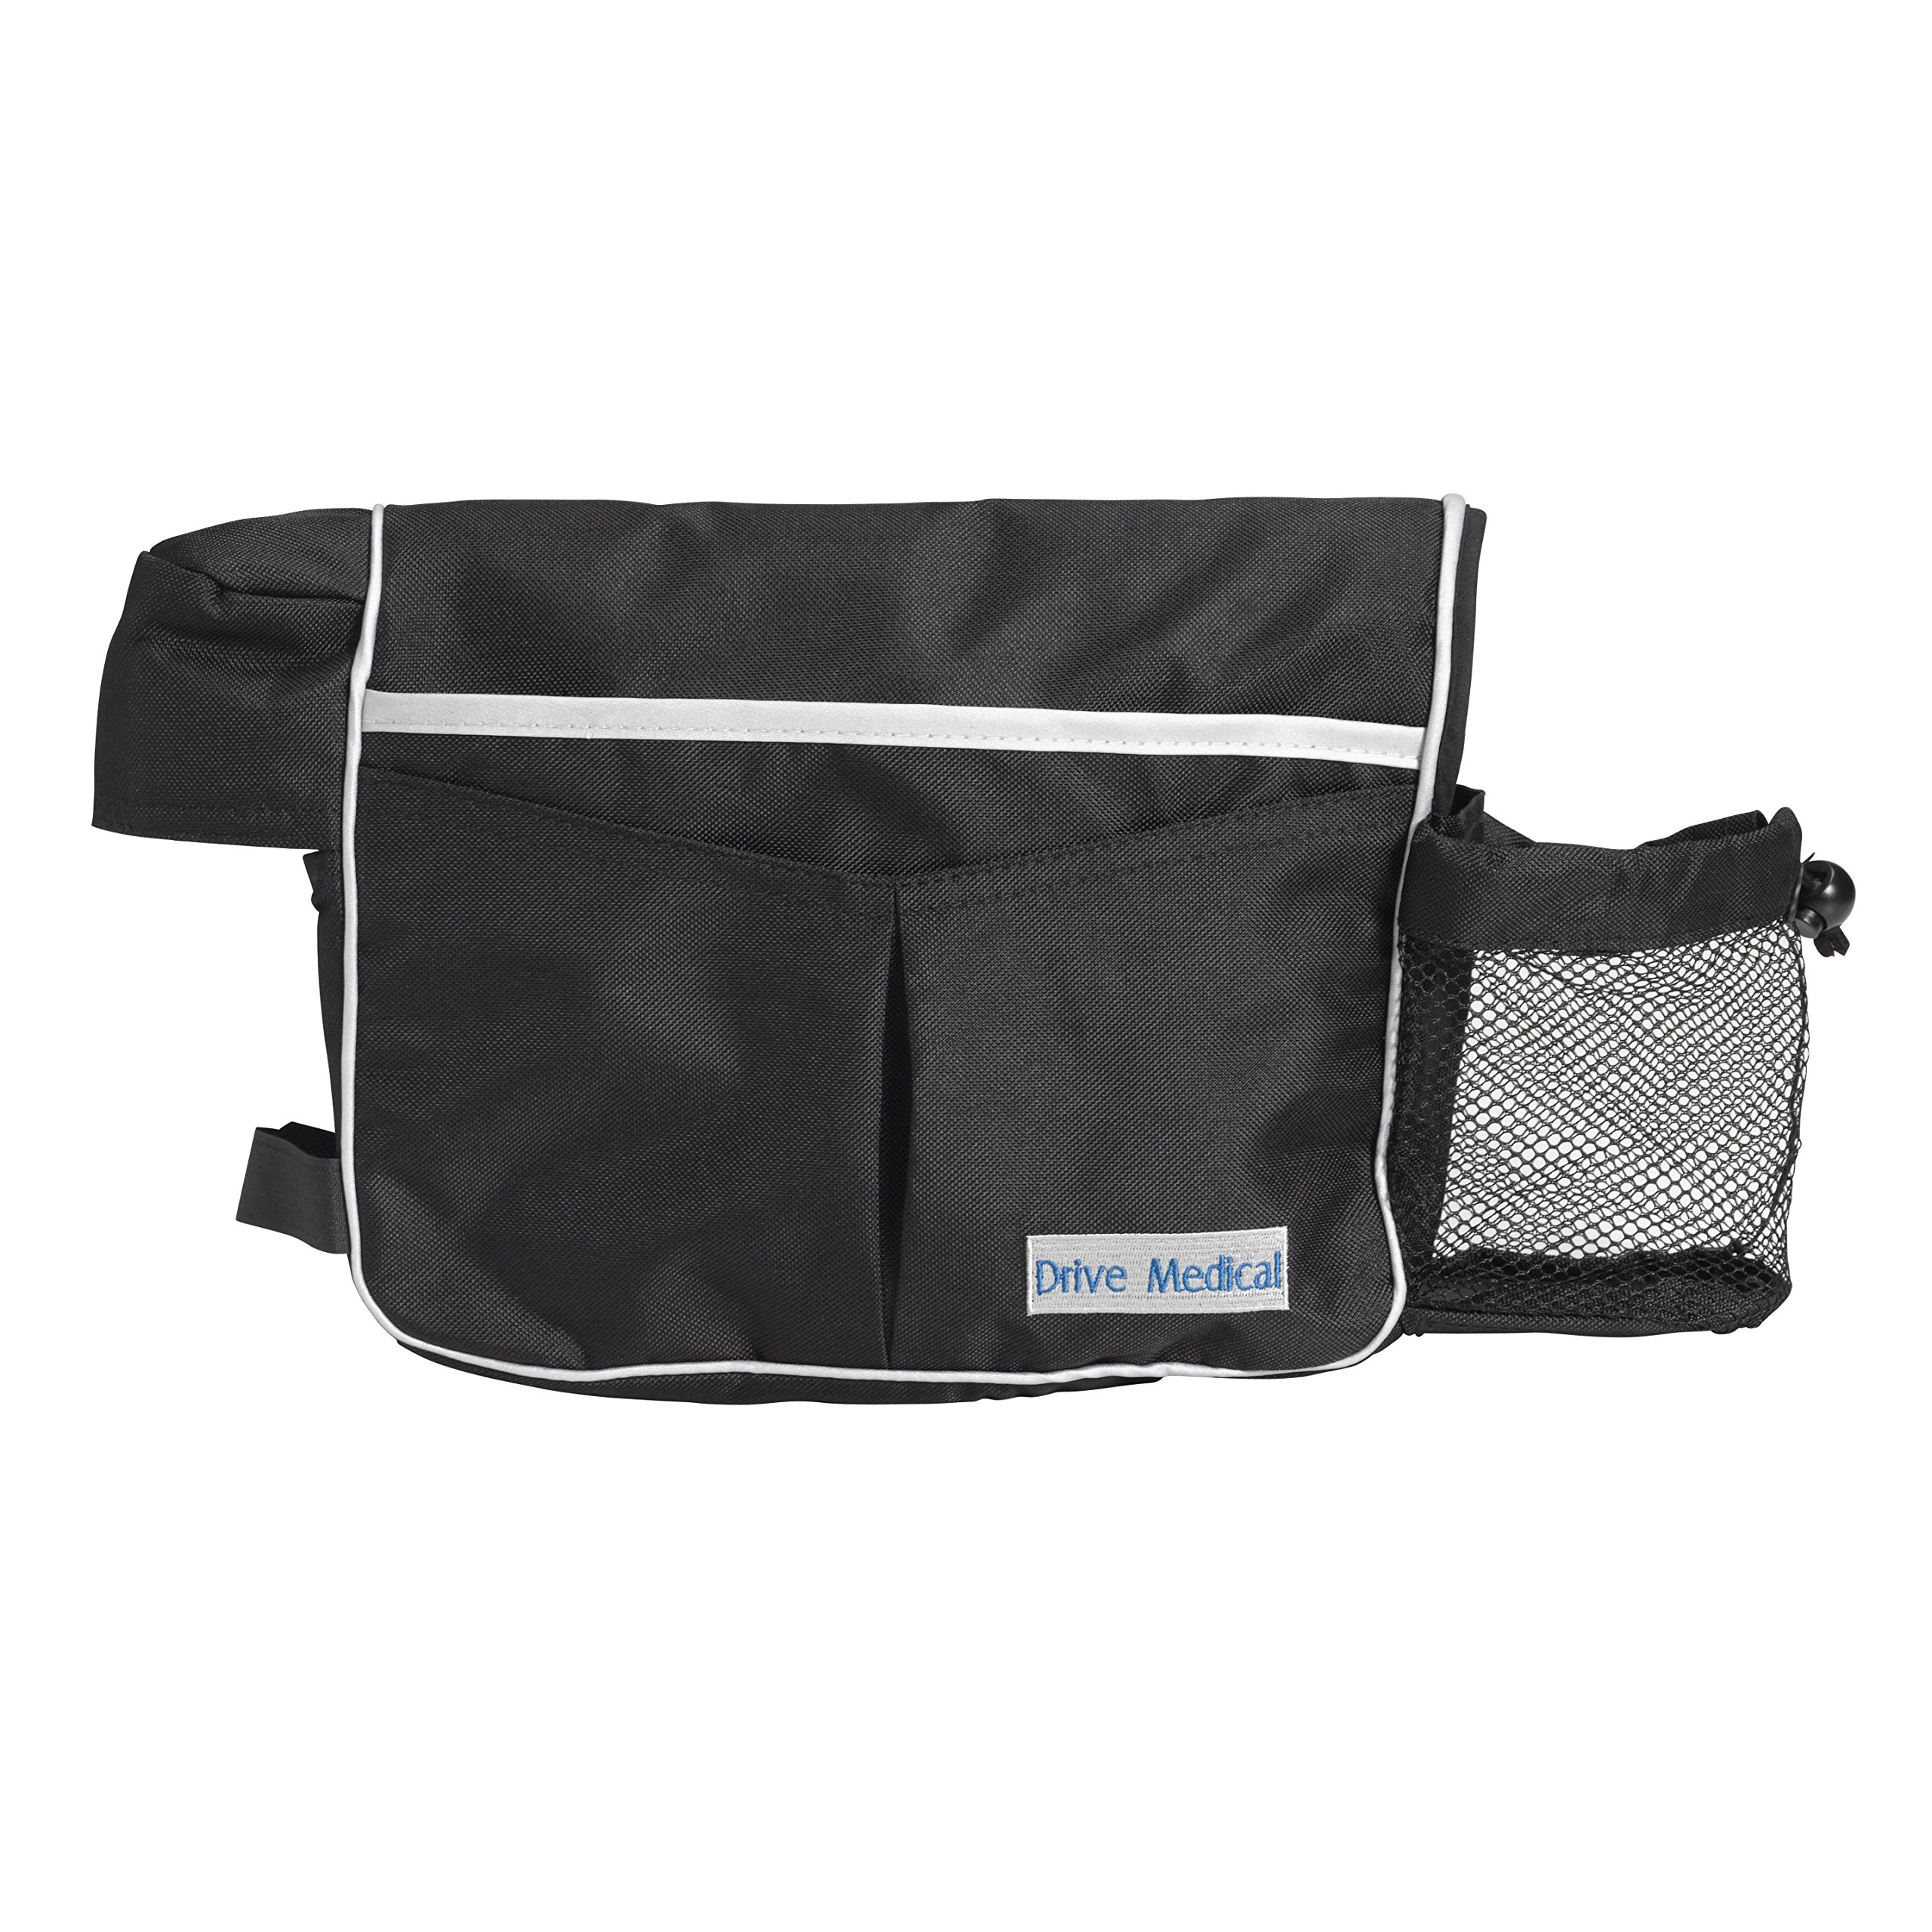 Drive Medical Power Mobility Armrest Bag, Medical Power Wheelchairs